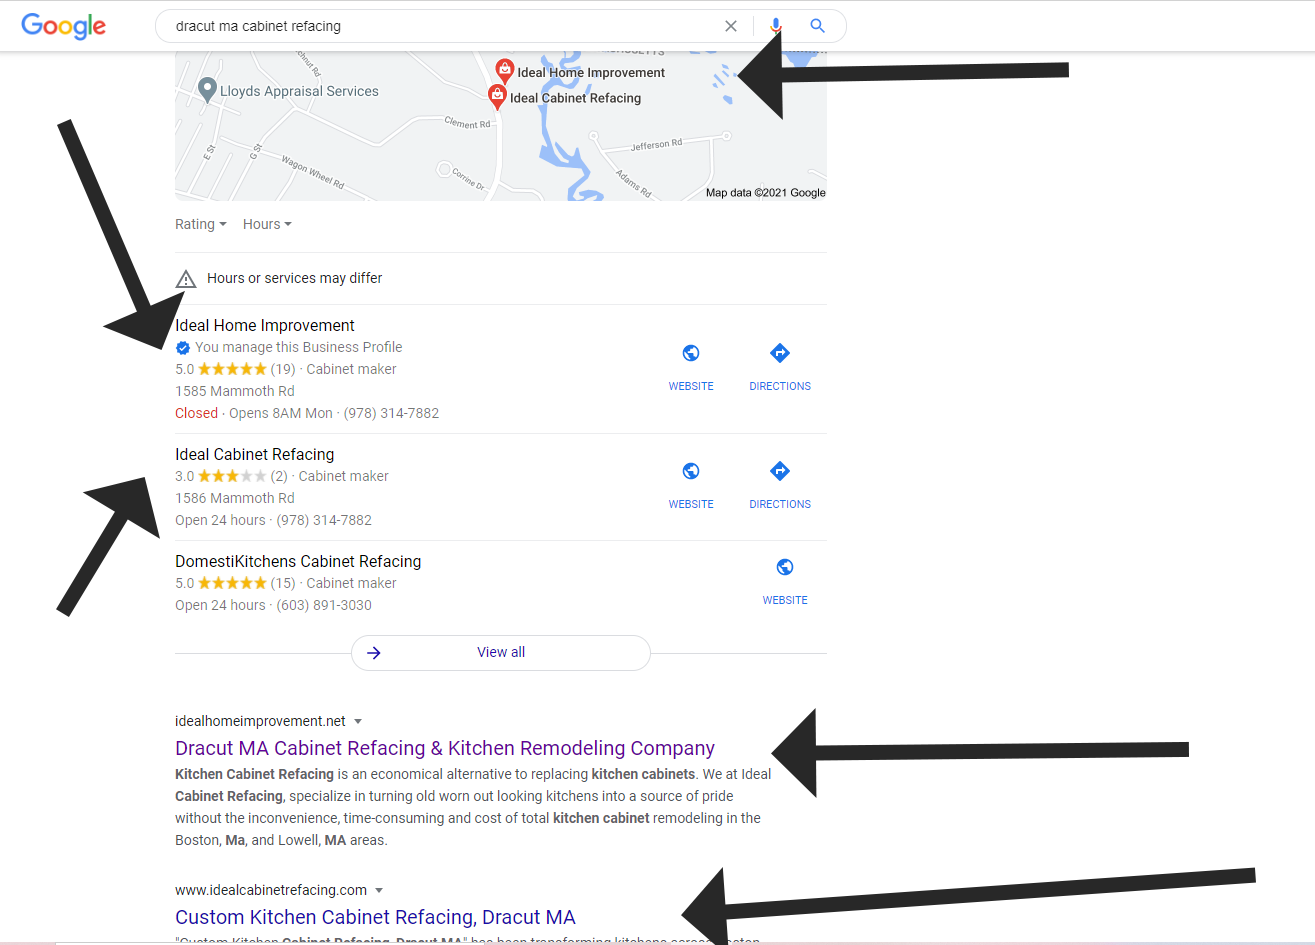 Google search for Dracut MA cabinet refacing